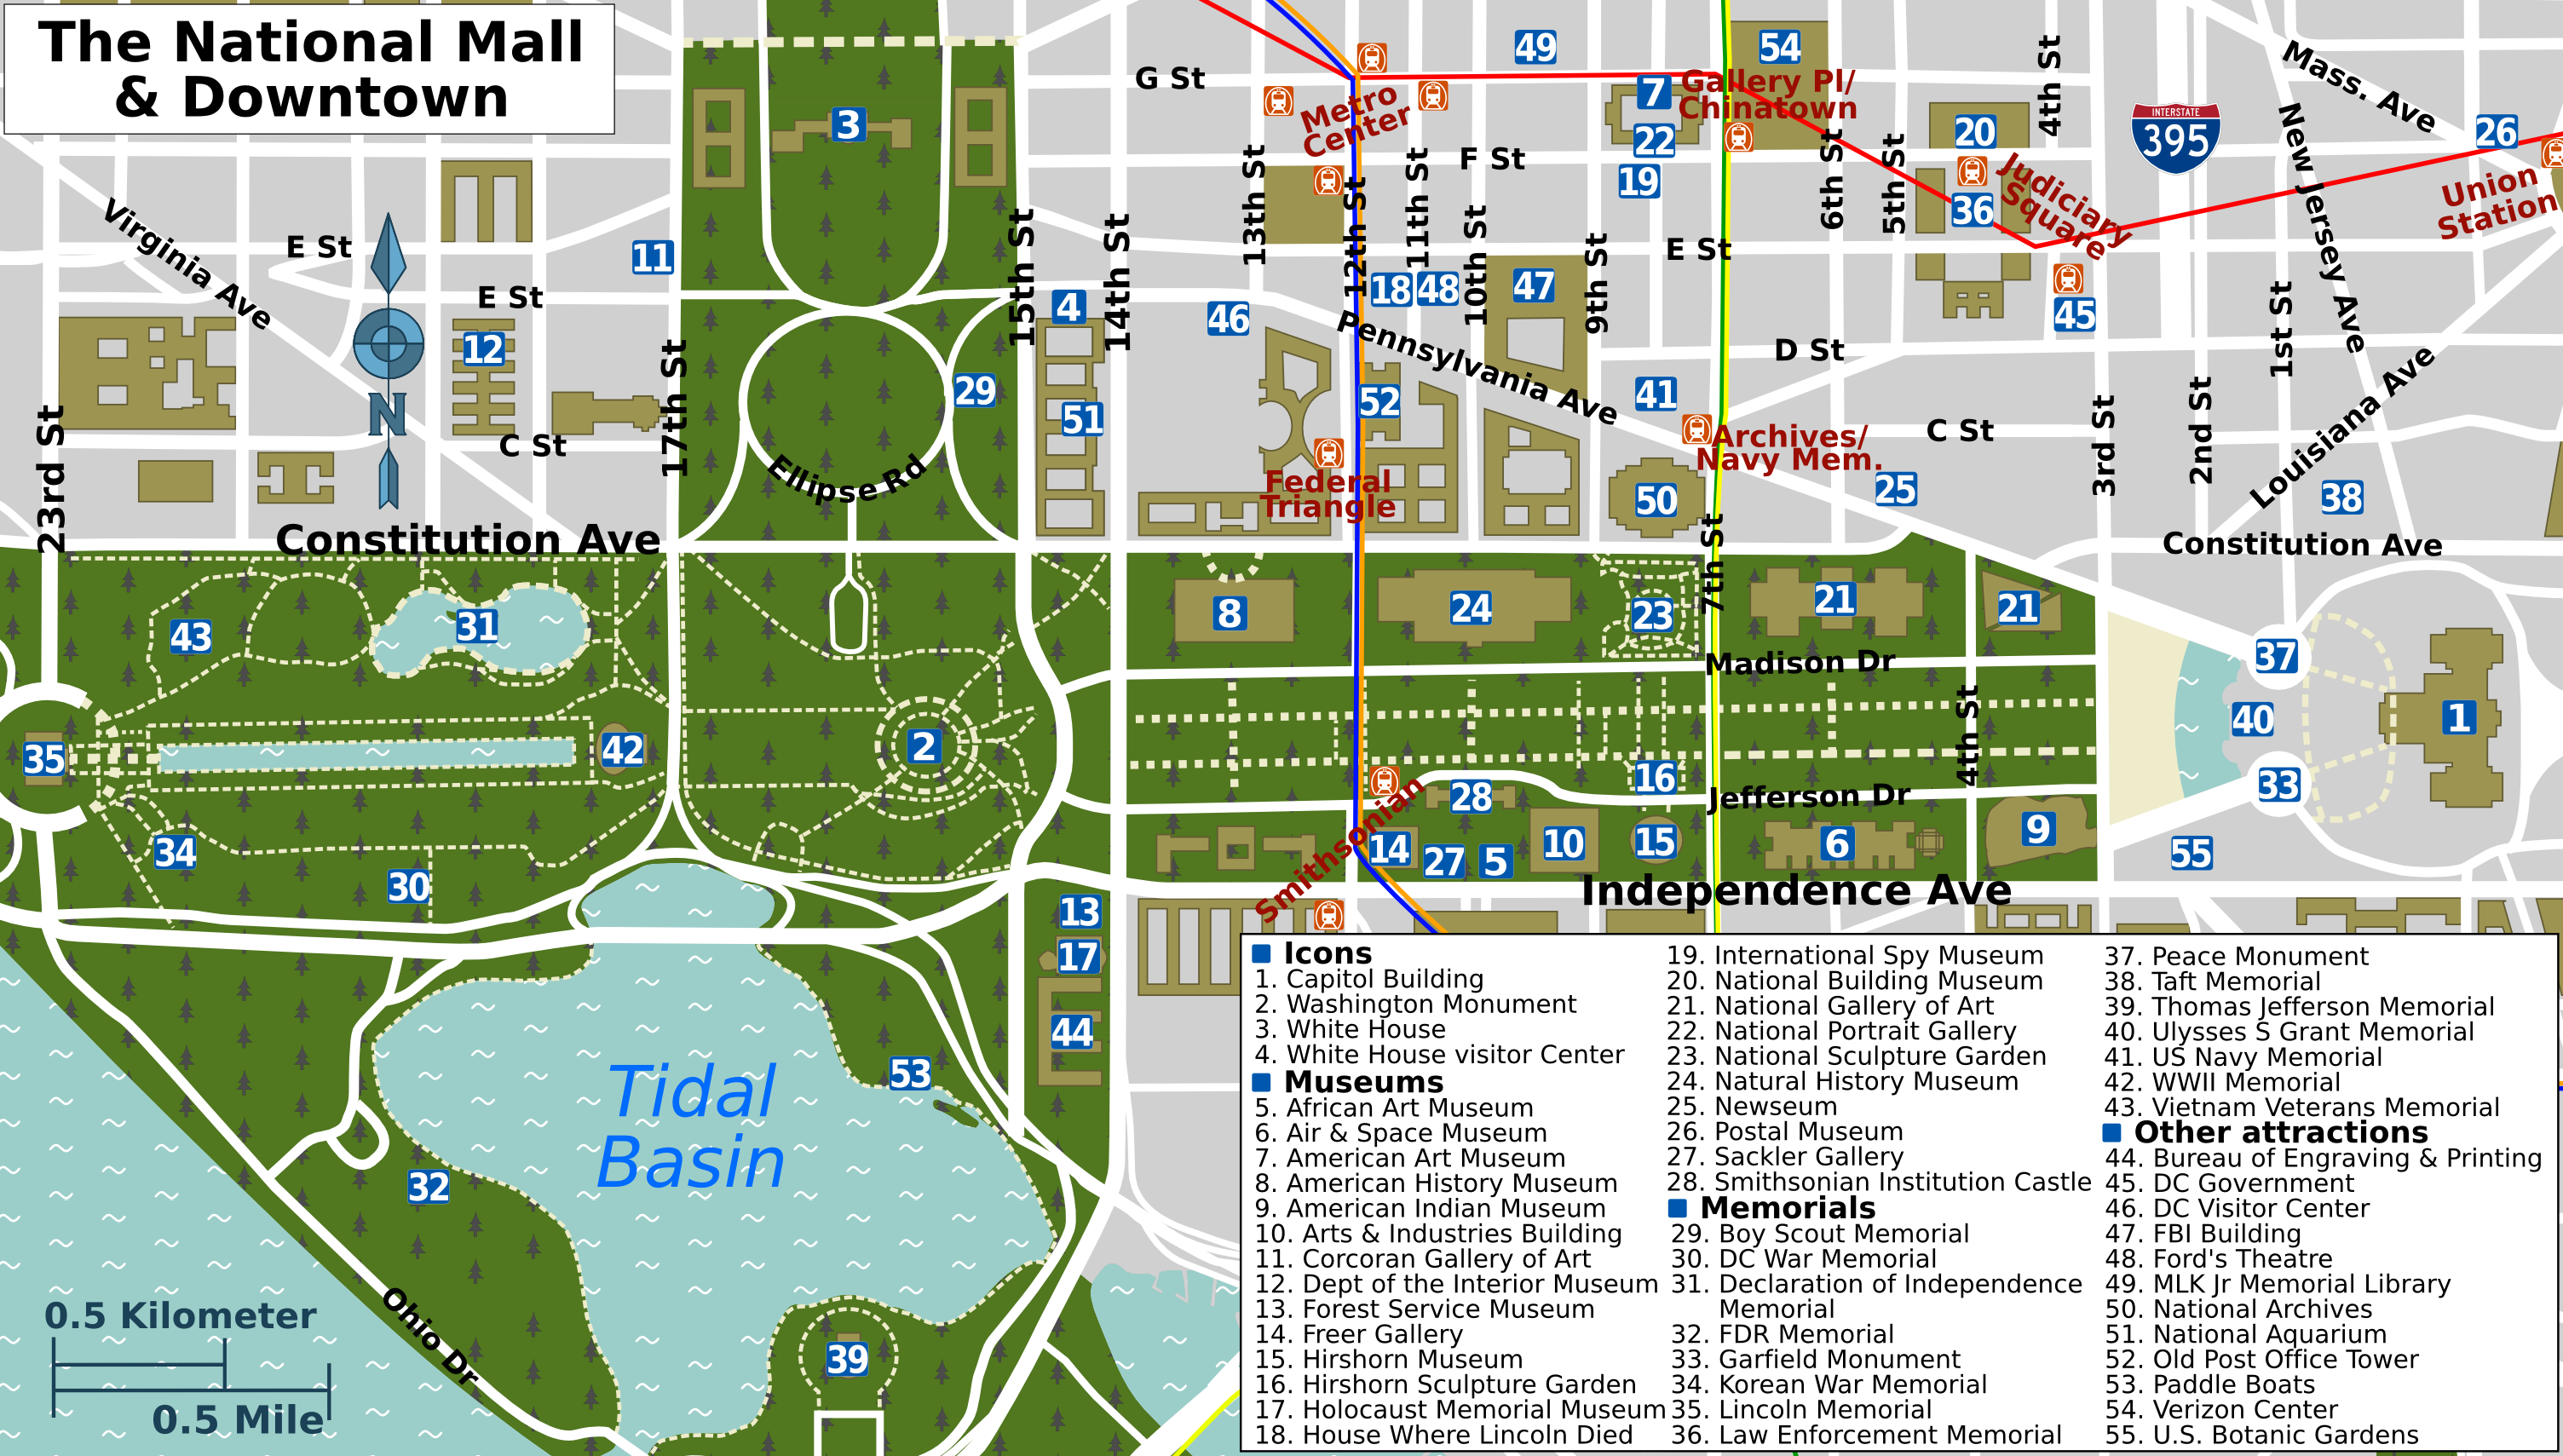 Washington Dc Mall Map Printable Description National Mall Map - Florida mall map